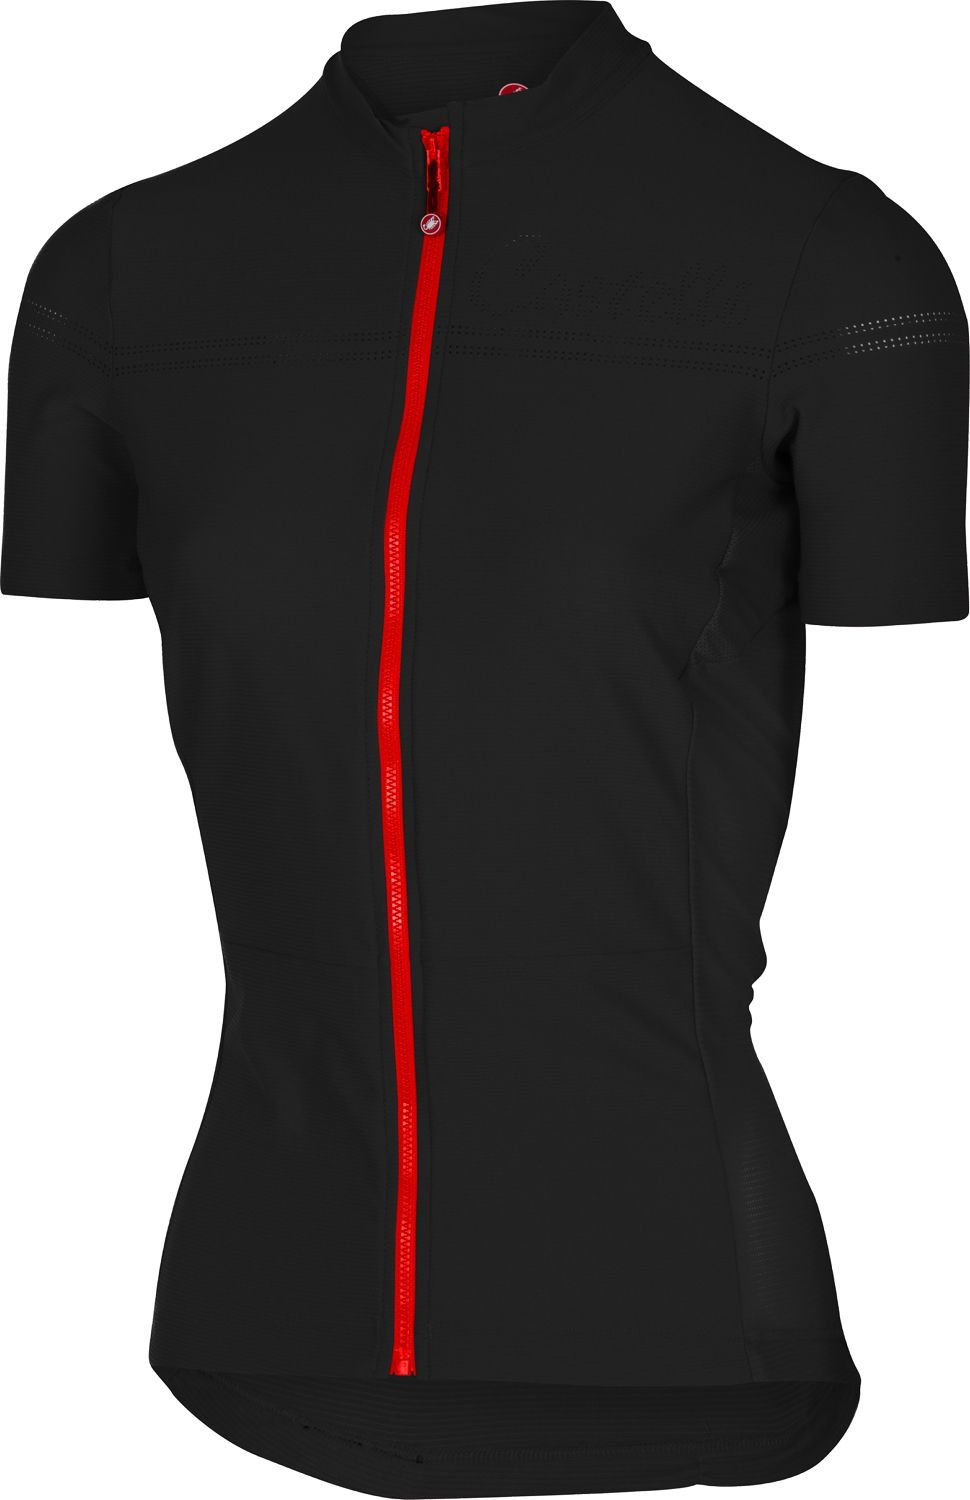 Castelli PROMESSA 2 - womens short sleeve cycling jersey black. Previous c45aae3aa